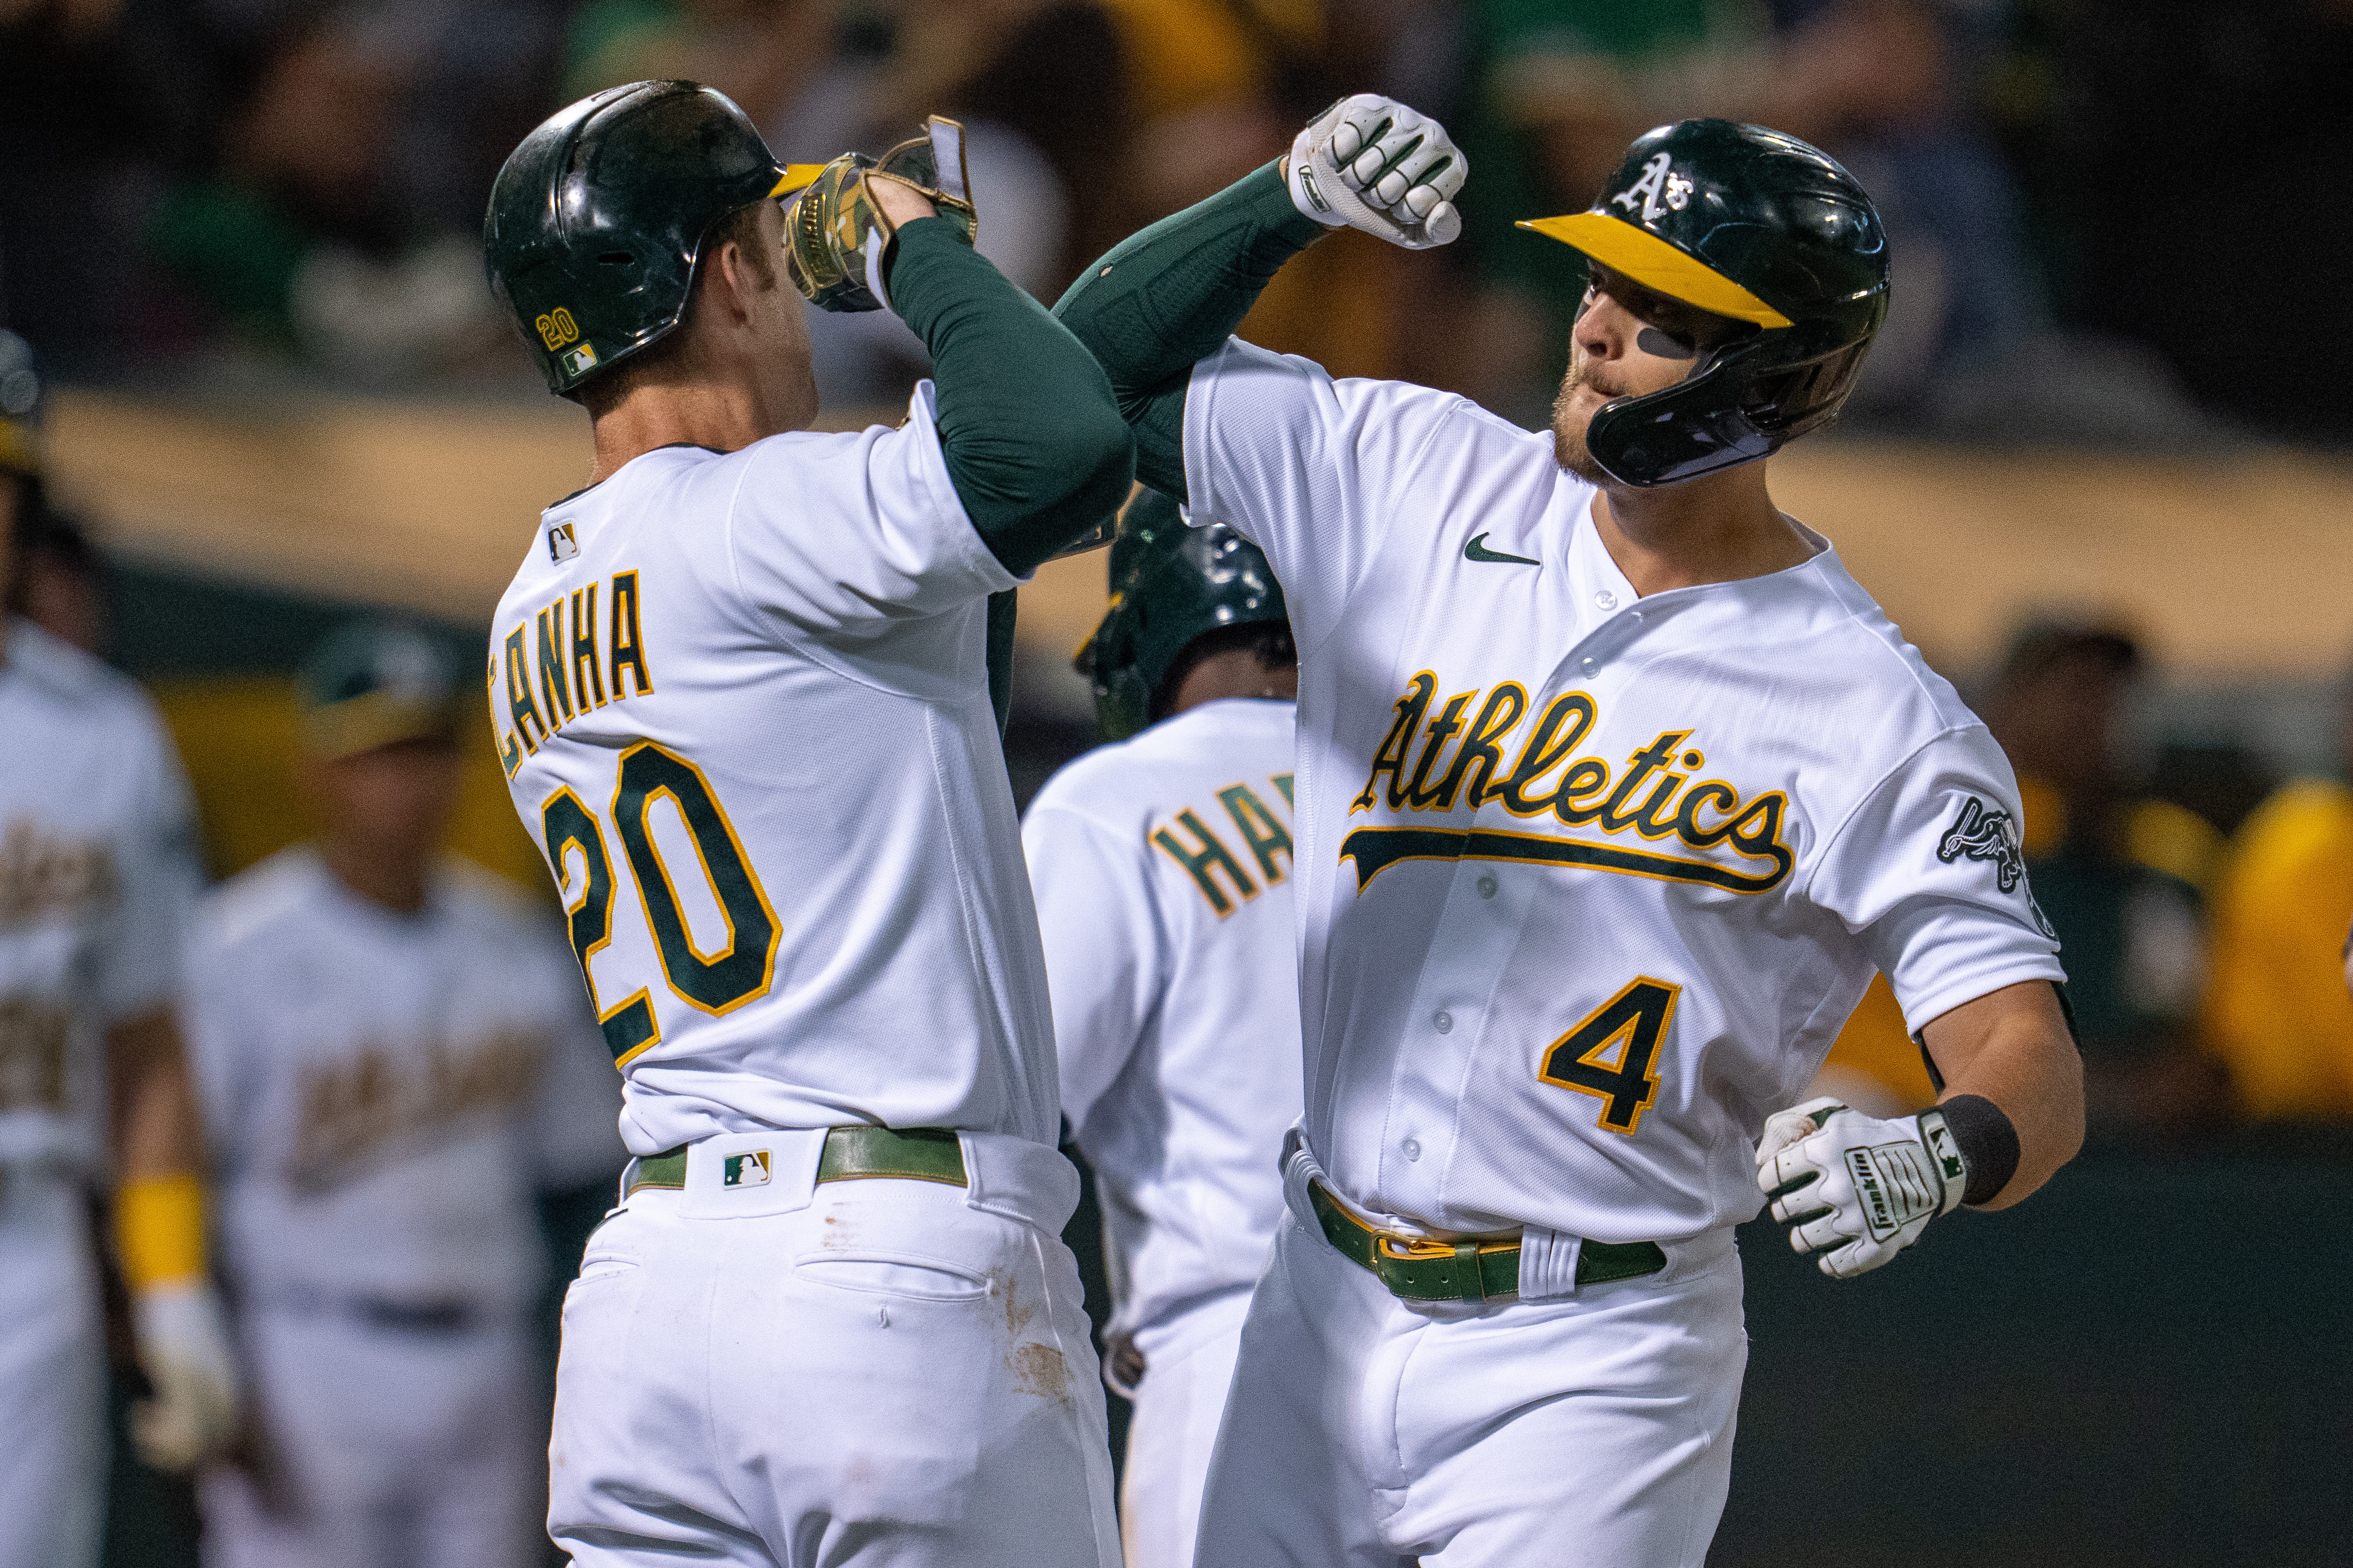 Sep 24, 2021; Oakland, California, USA;  Oakland Athletics designated hitter Mark Canha (20) and third baseman Chad Pinder (4) celebrate after a grand slam home run against the Houston Astros during the seventh inning at RingCentral Coliseum. Mandatory Credit: Neville E. Guard-USA TODAY Sports